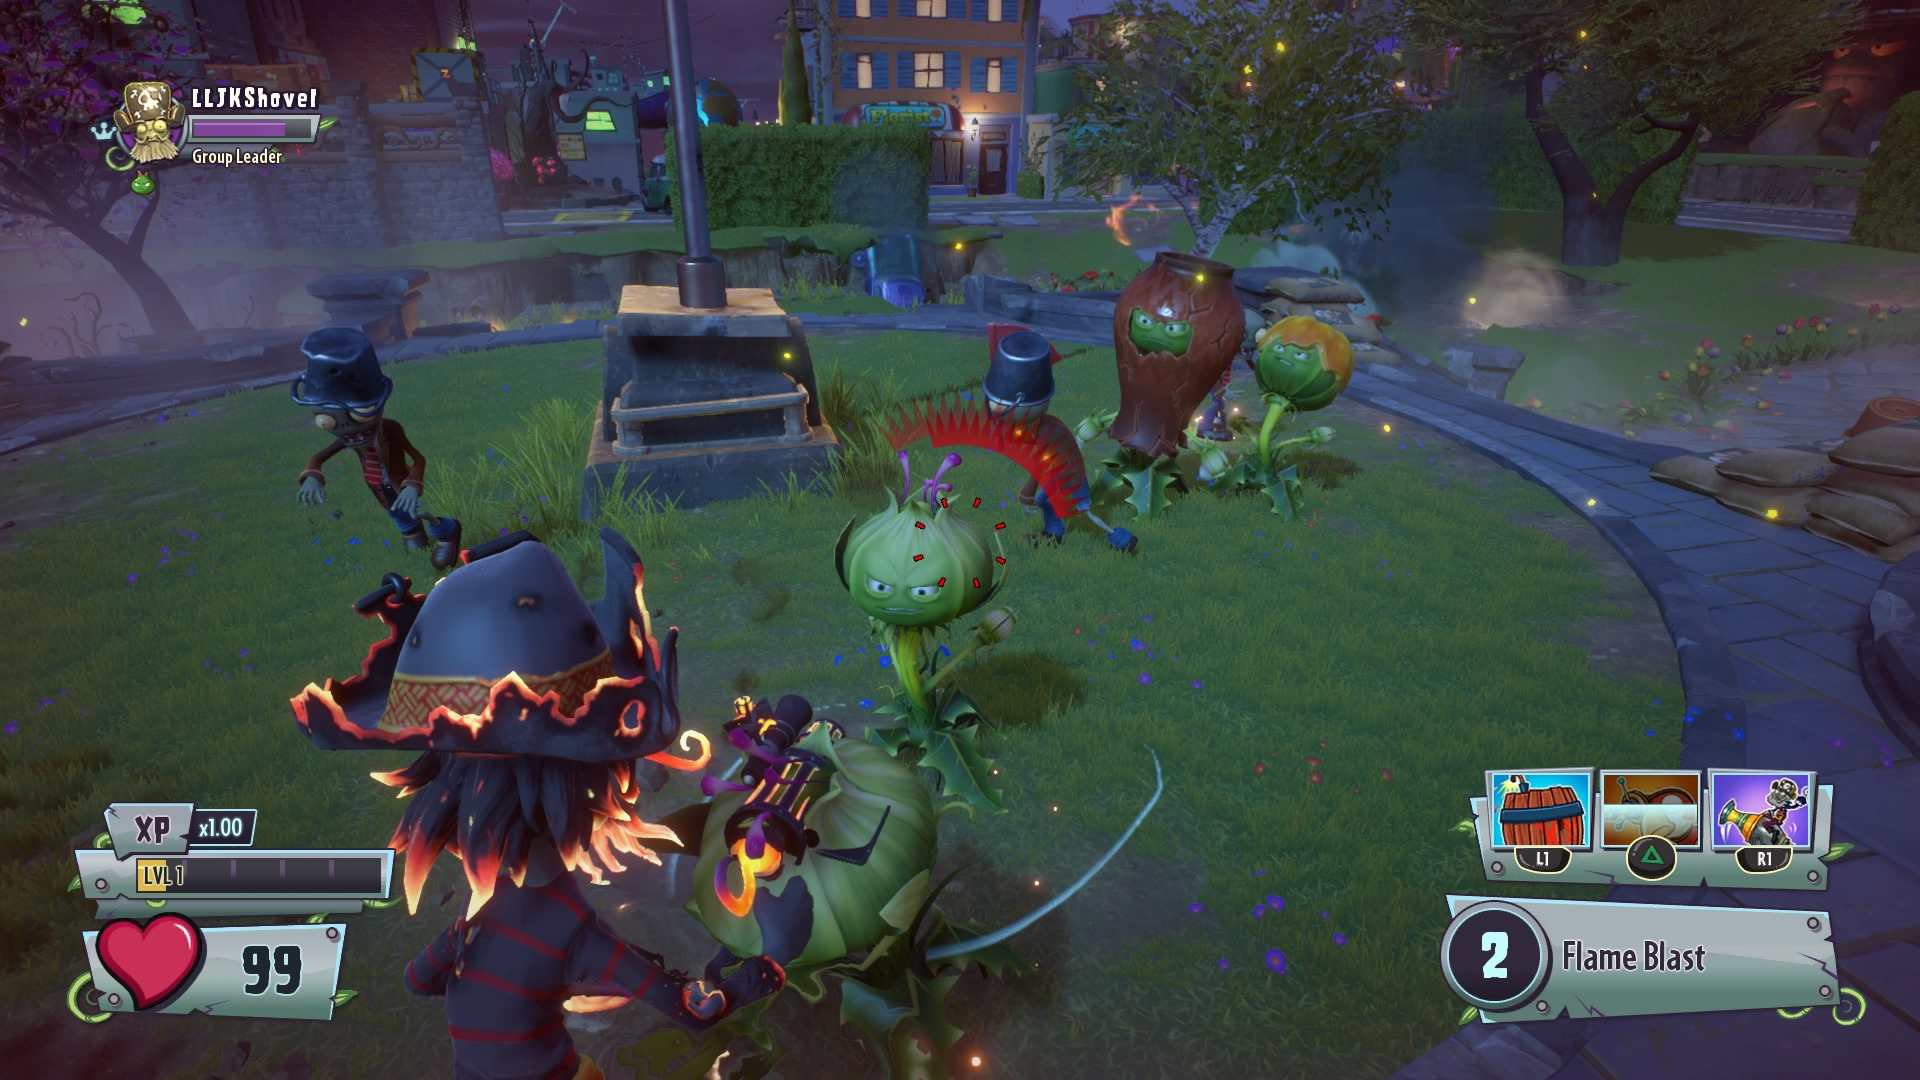 Plants Vs Zombies Garden Warfare 2 On Alkuvuoden